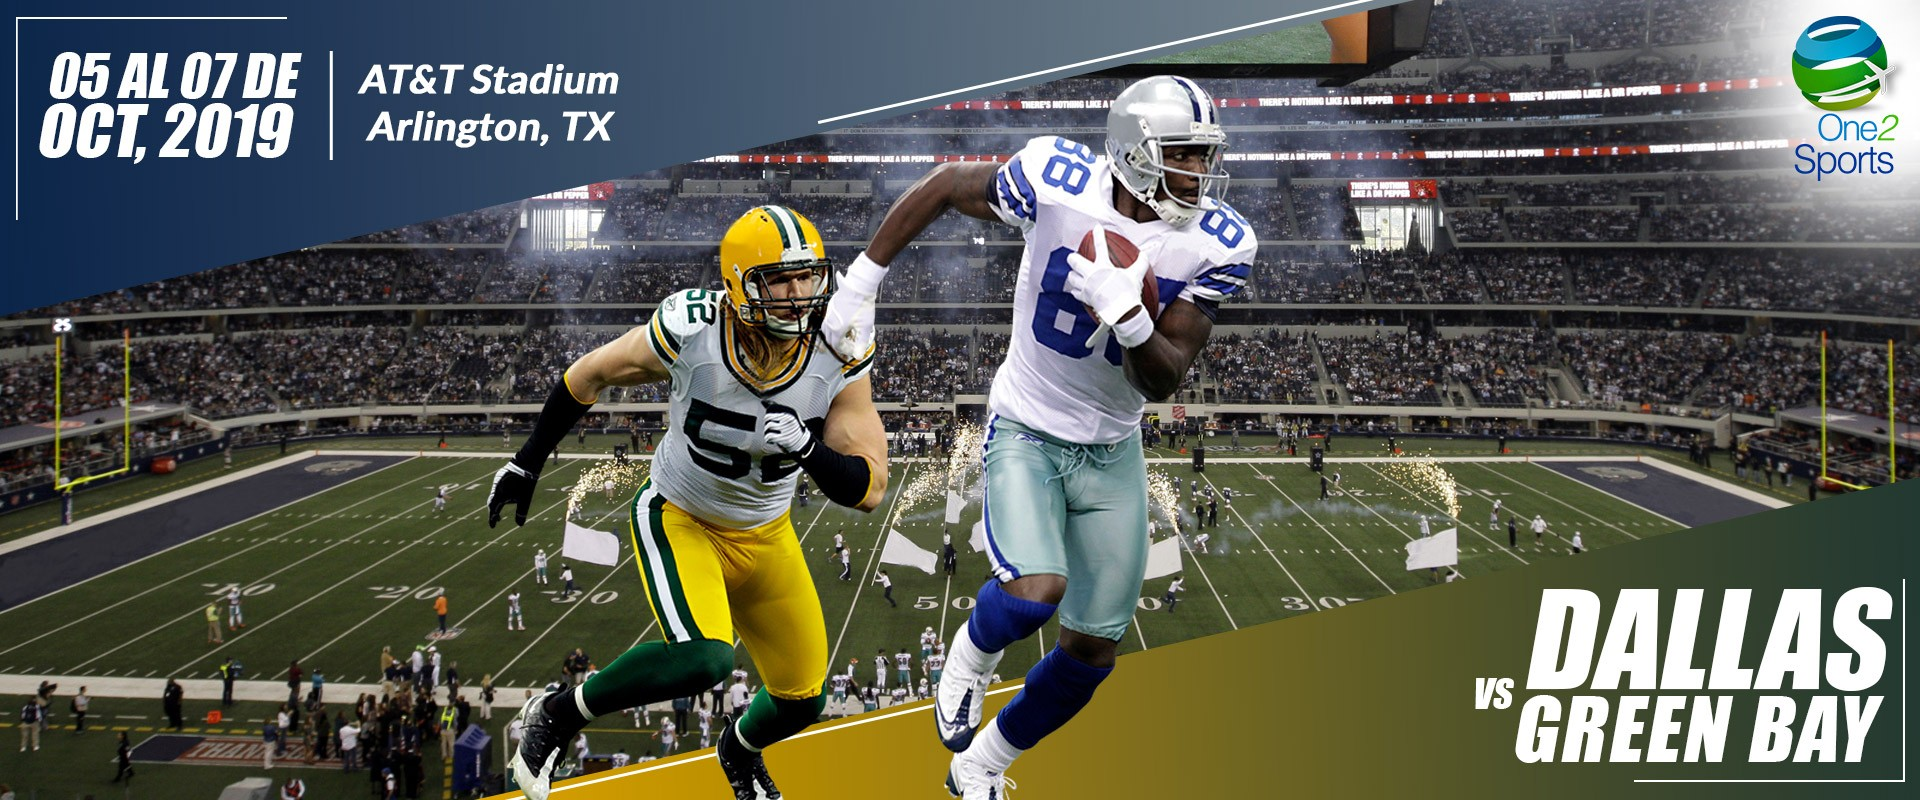 Dallas vs Green Bay